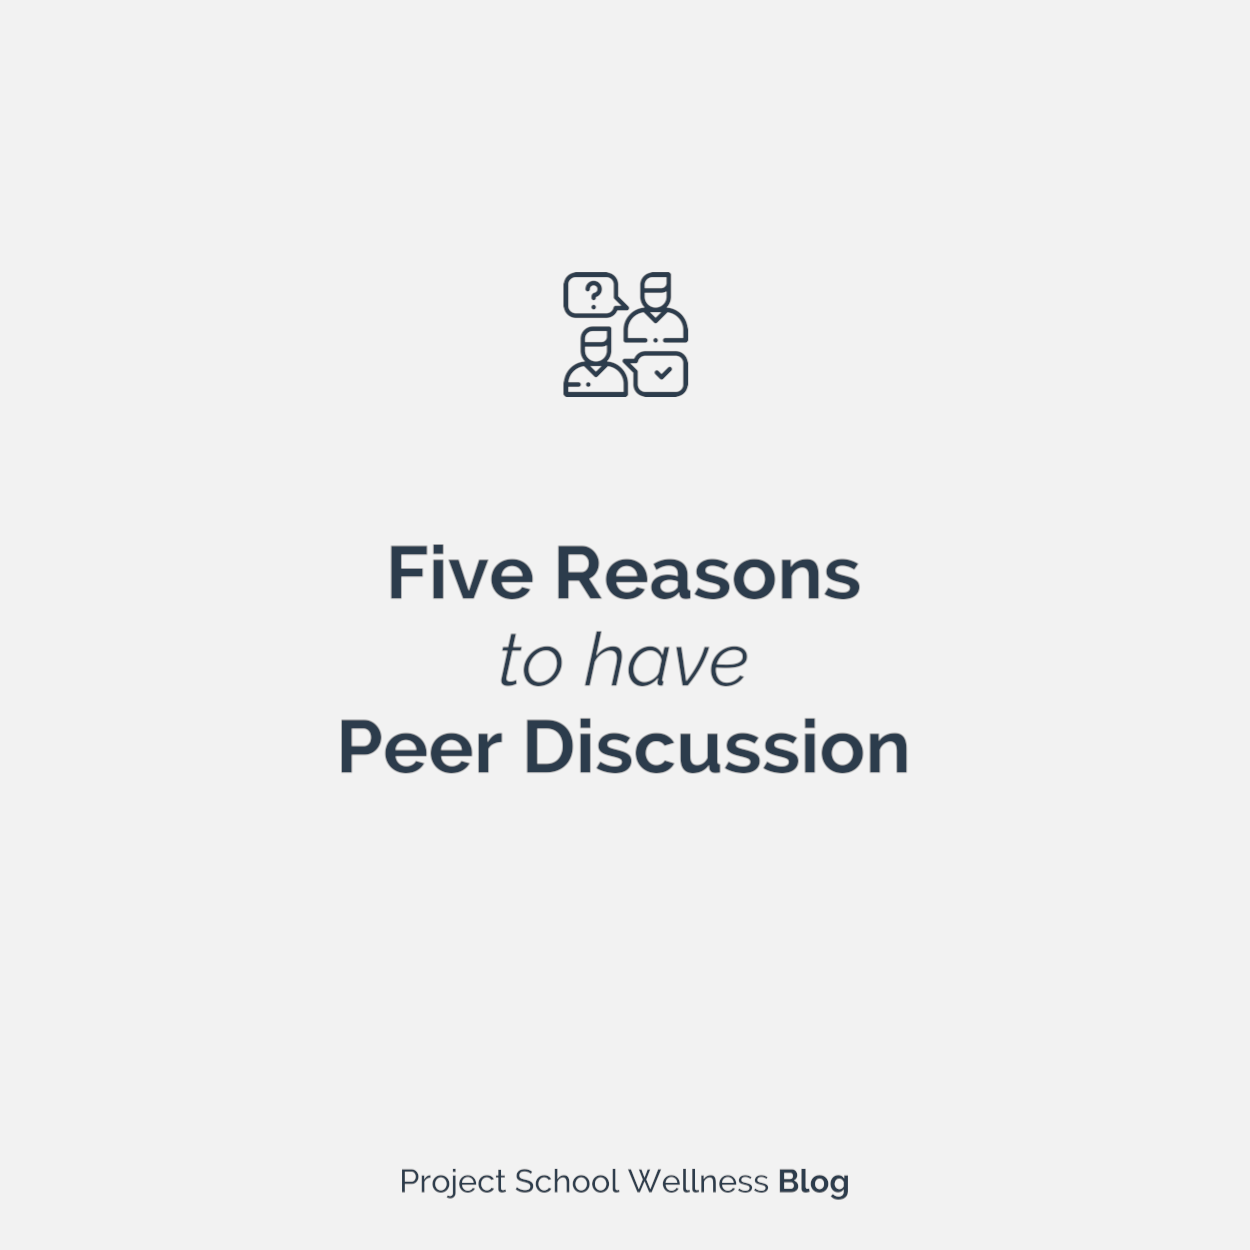 PSW Blog - Five Reasons to Have Peer Discussion